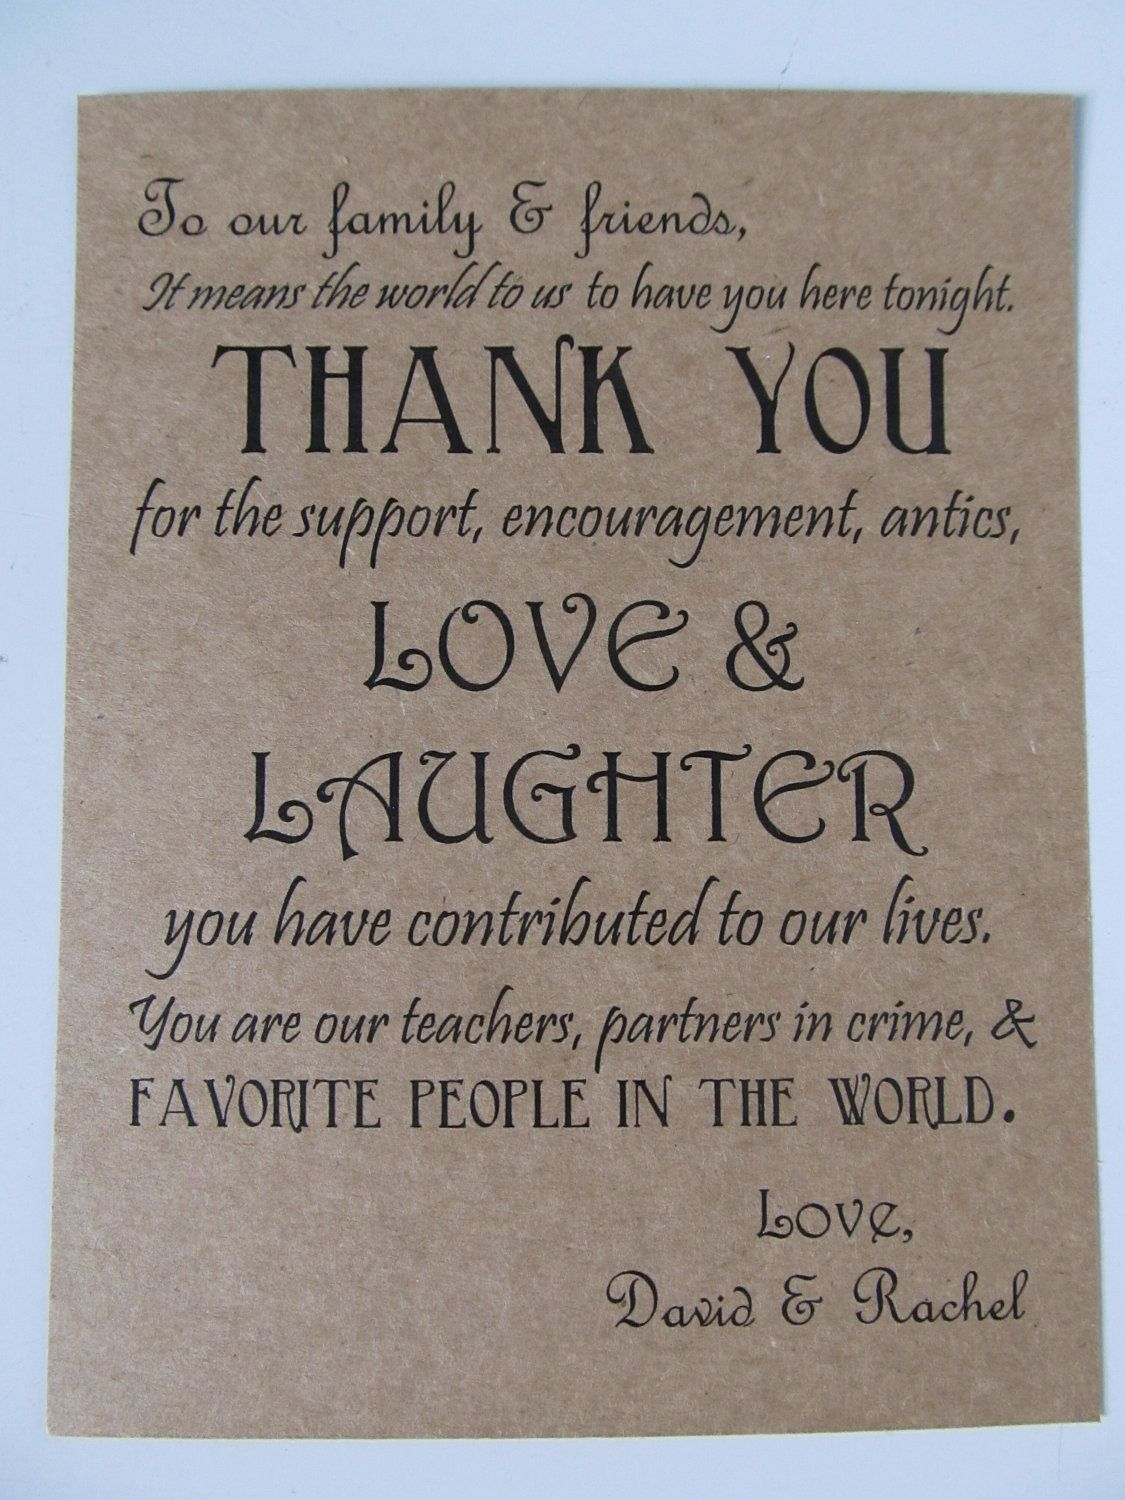 thank you cards wedding Wedding Thank You Card guests dinner plates or wedding favor 0 75 via